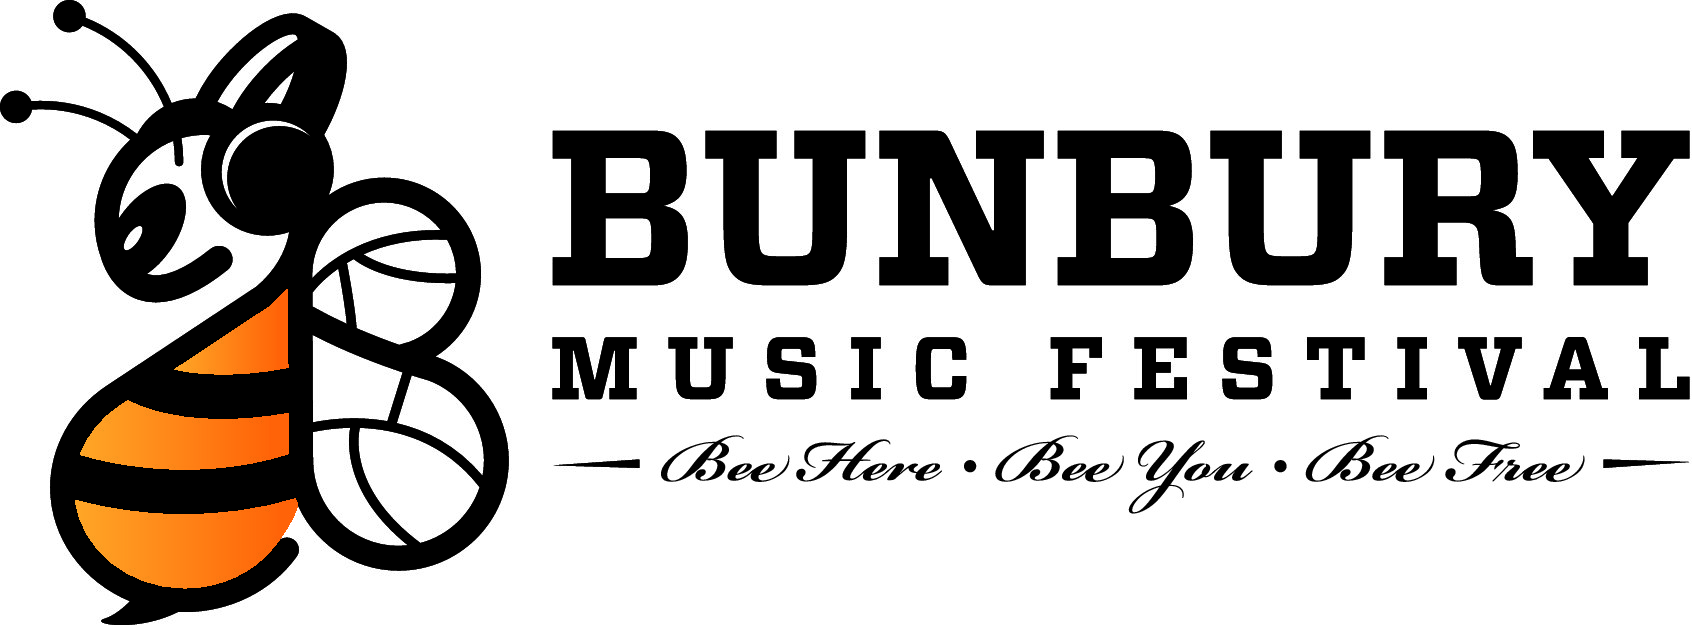 Bunbury_logo_wide